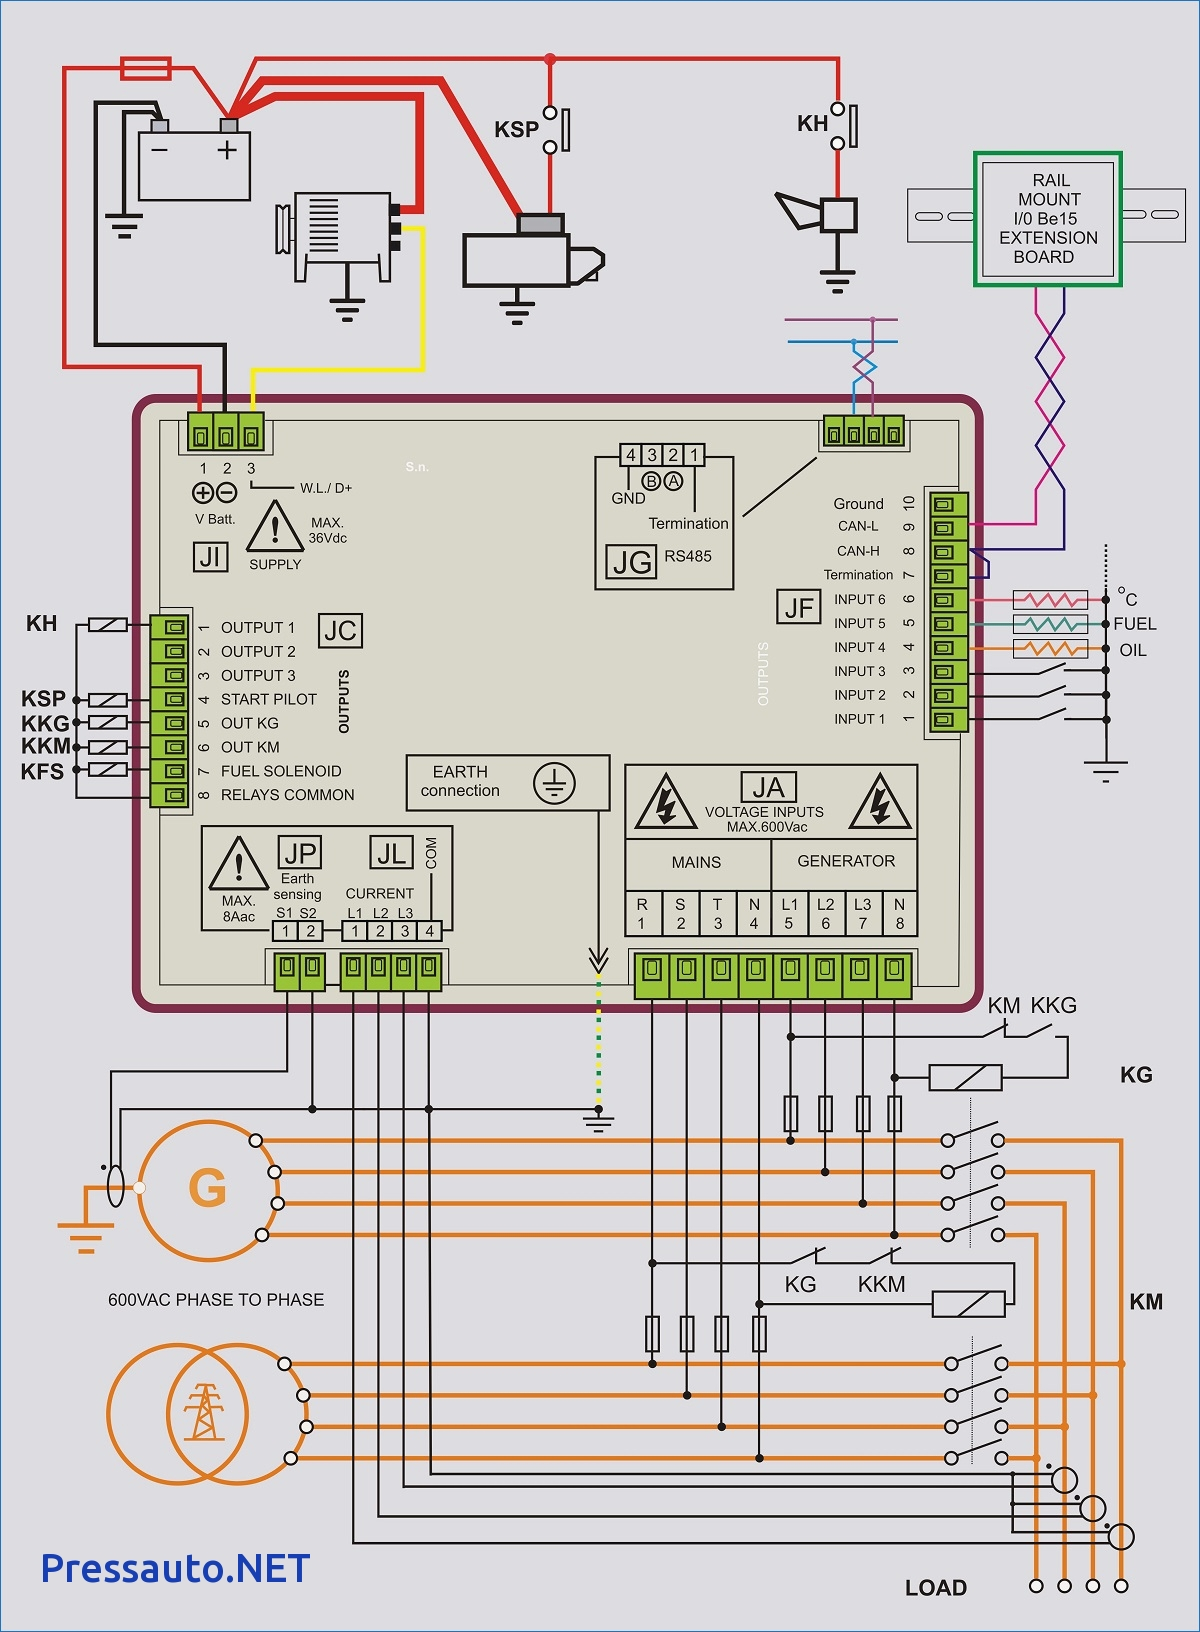 generac automatic transfer switch wiring diagram Download-Generac Transfer Switch Wiring Diagram Dolgular Within Automatic 6-t